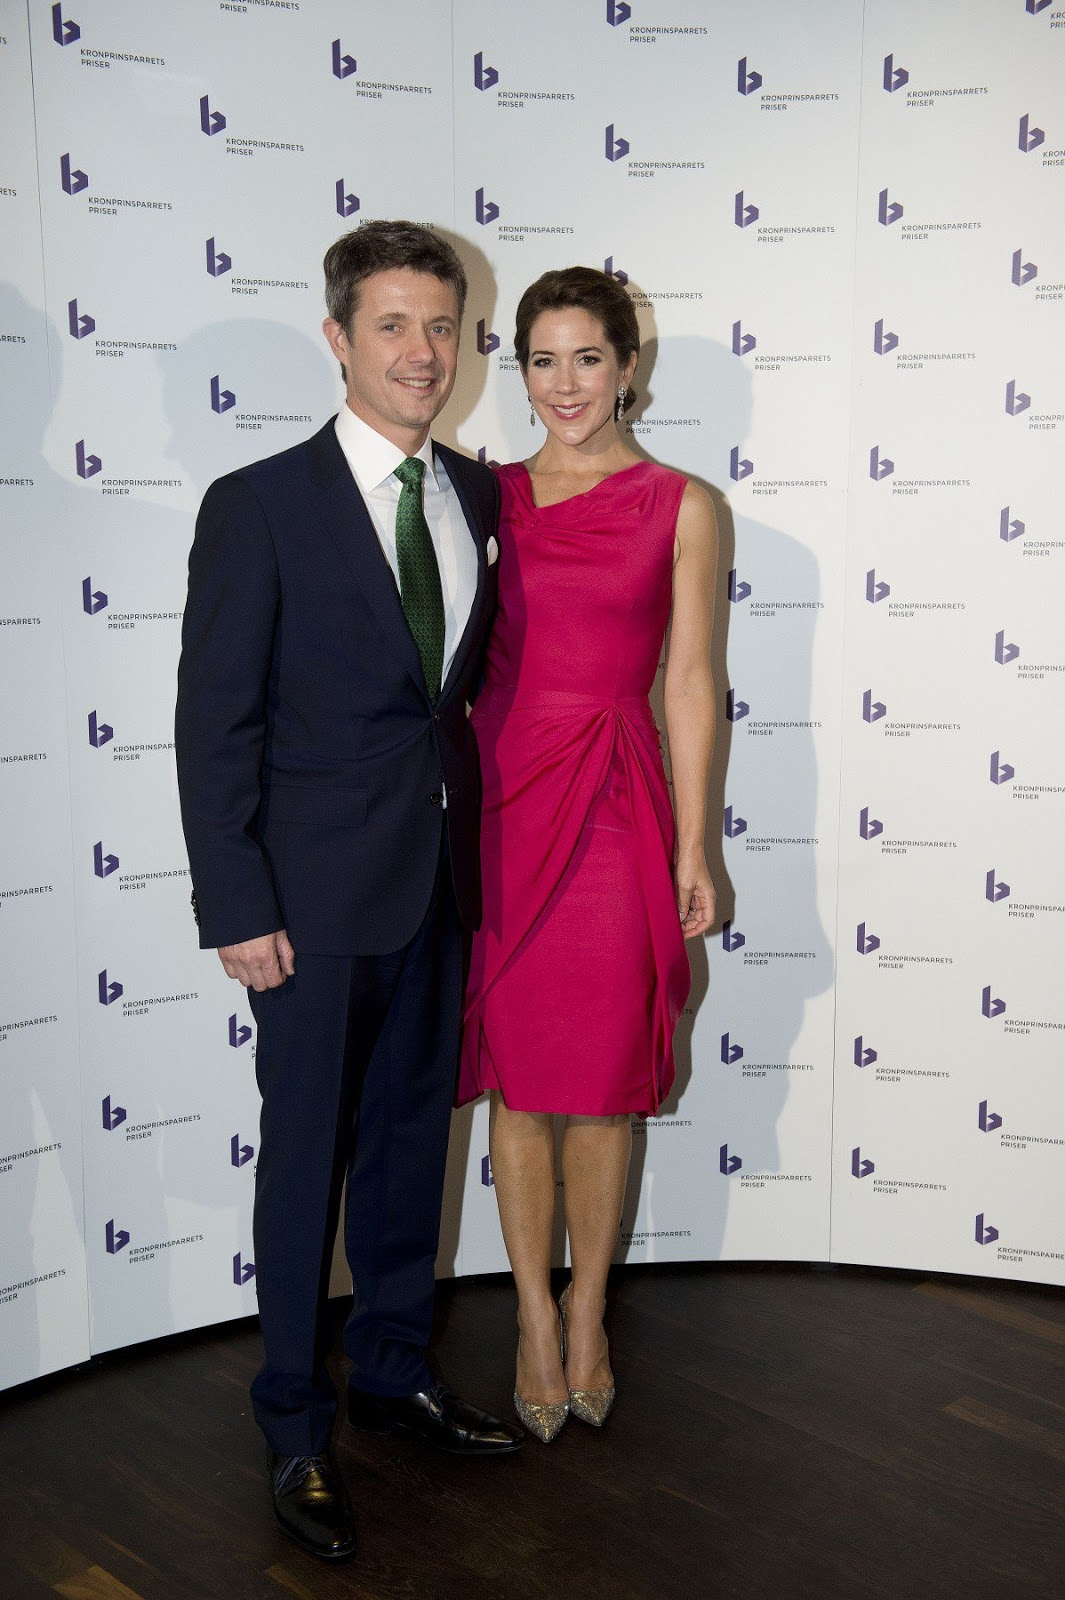 Kronprins Frederik and Kronprinsesse Mary´s Kronprinsparrets Priser 2014. Crown Prince Frederik and Crown Princess Mary